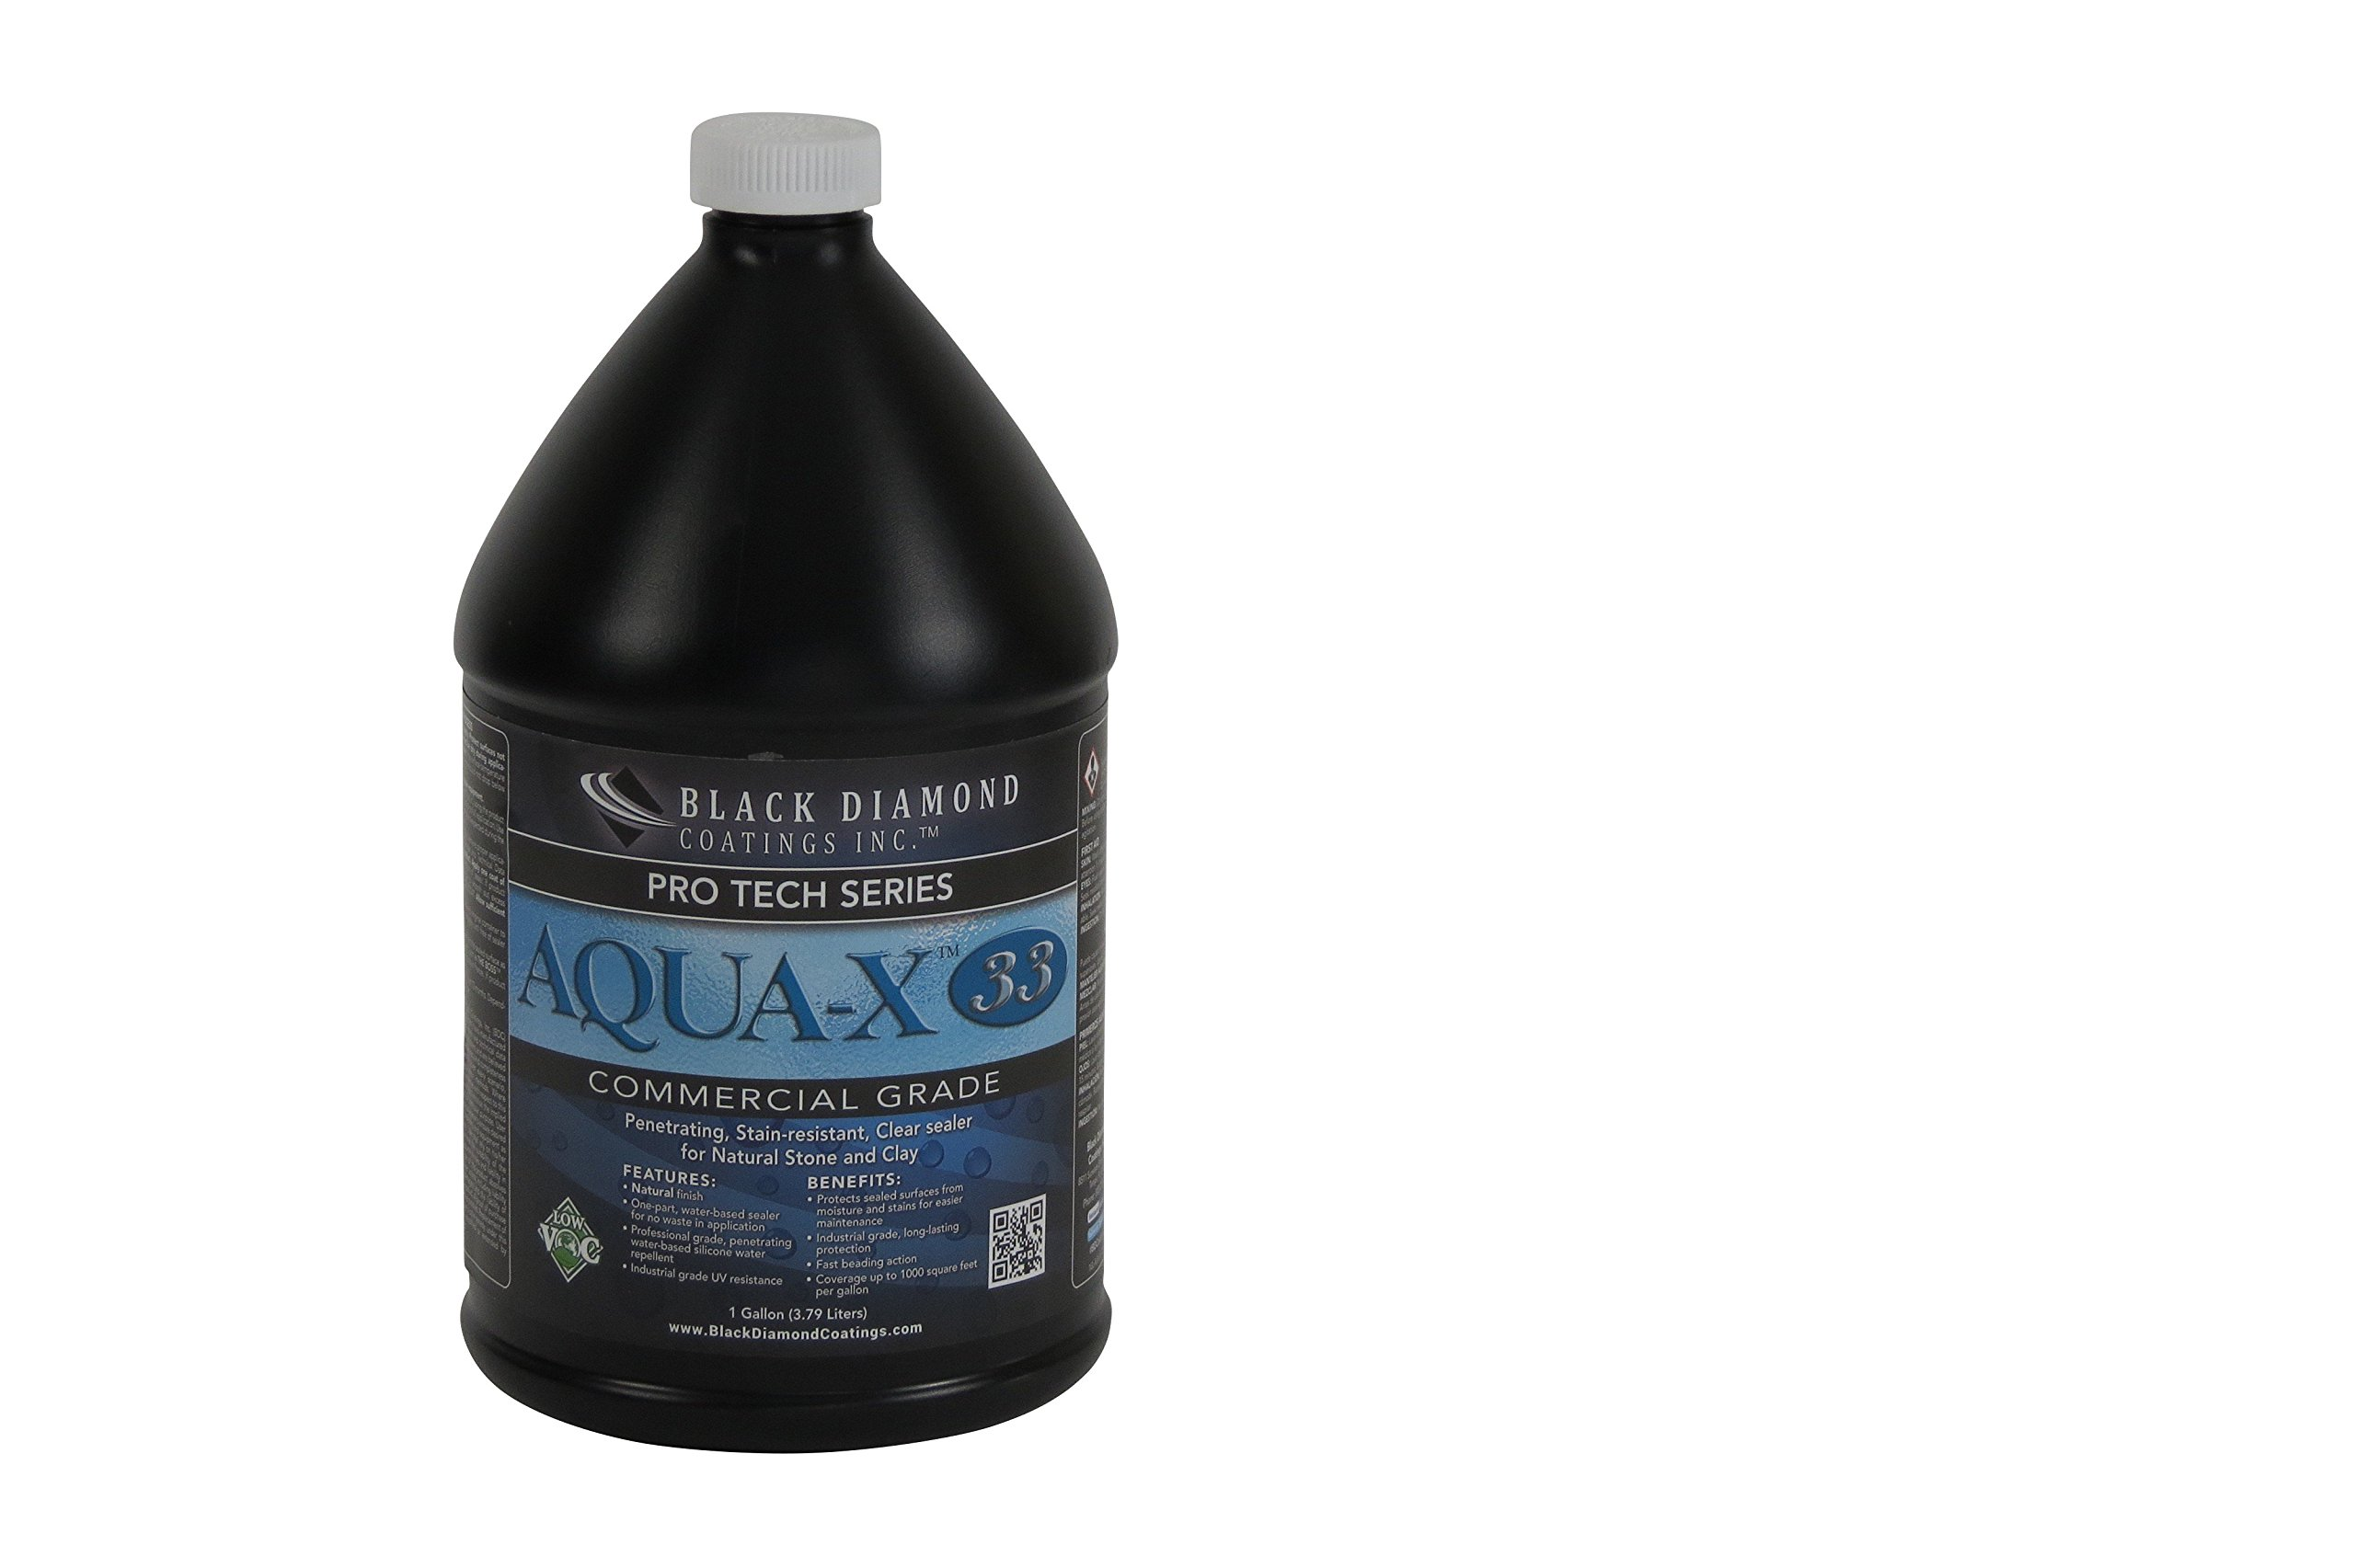 Aqua - X 33 Clear Sealer for Natural Stone & Clay - Stain Resistant, Clay Pavers and Stone Sealant, PRO TECH Series by BLACK DIAMOND COATINGS INC. (1 Gallon)